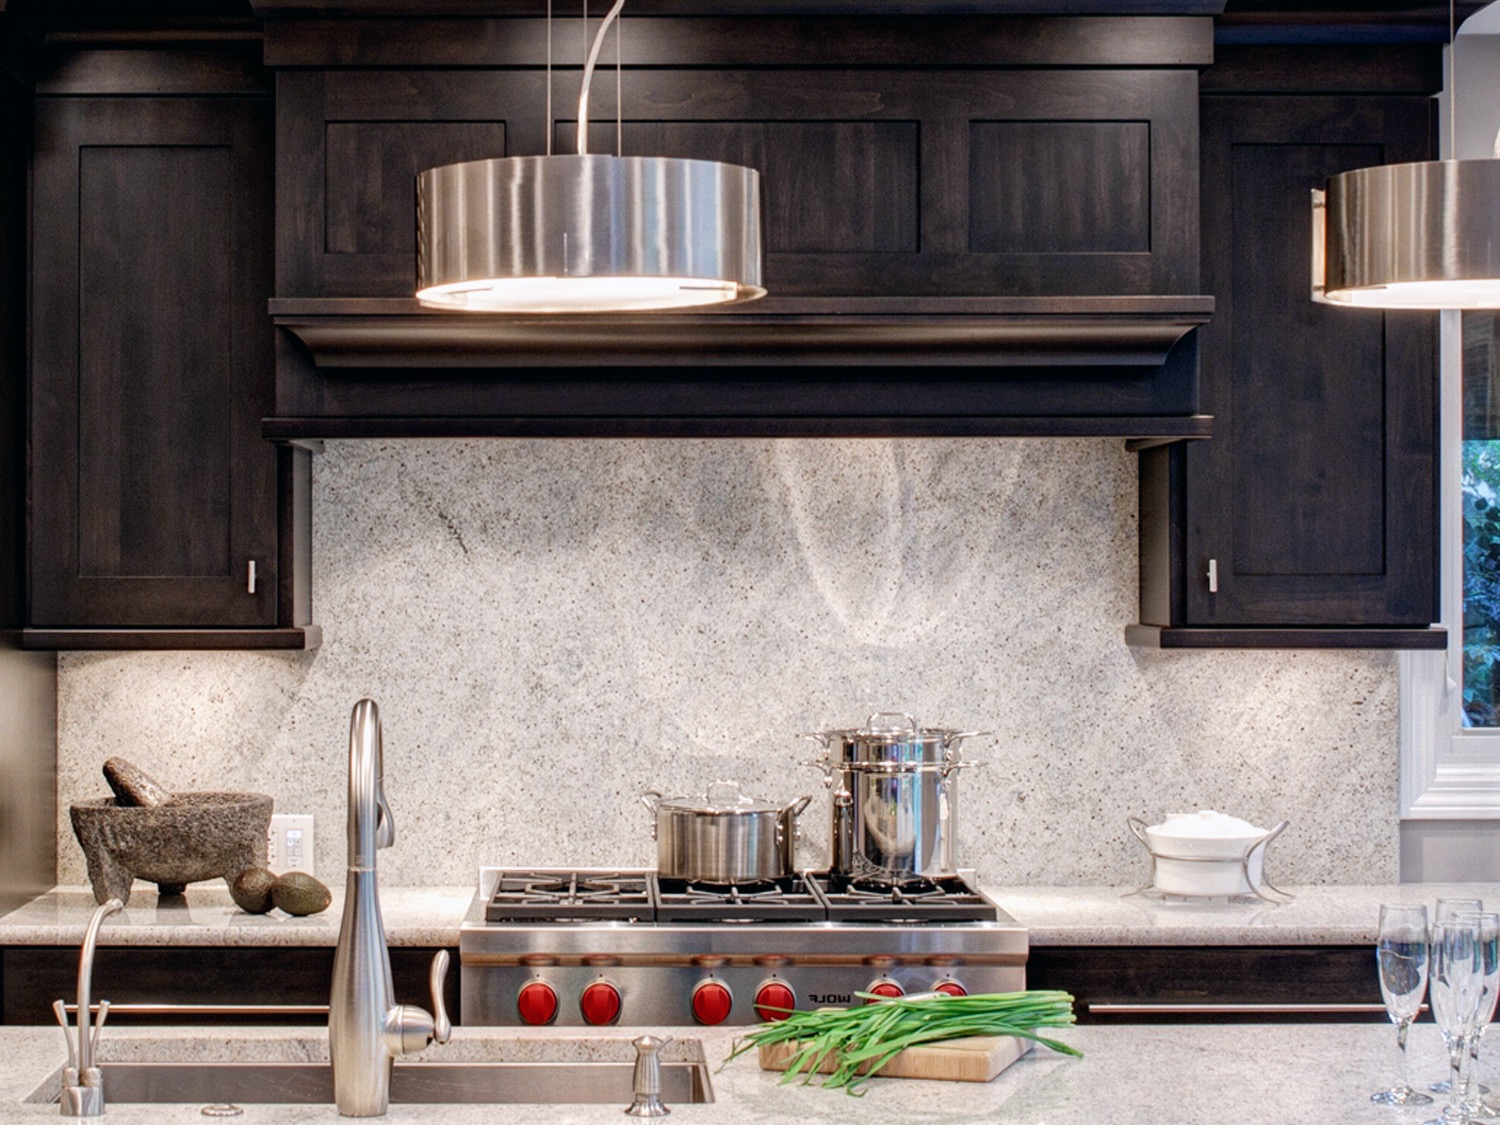 Granite Backsplash For Modern Kitchen (Image 10 of 32)